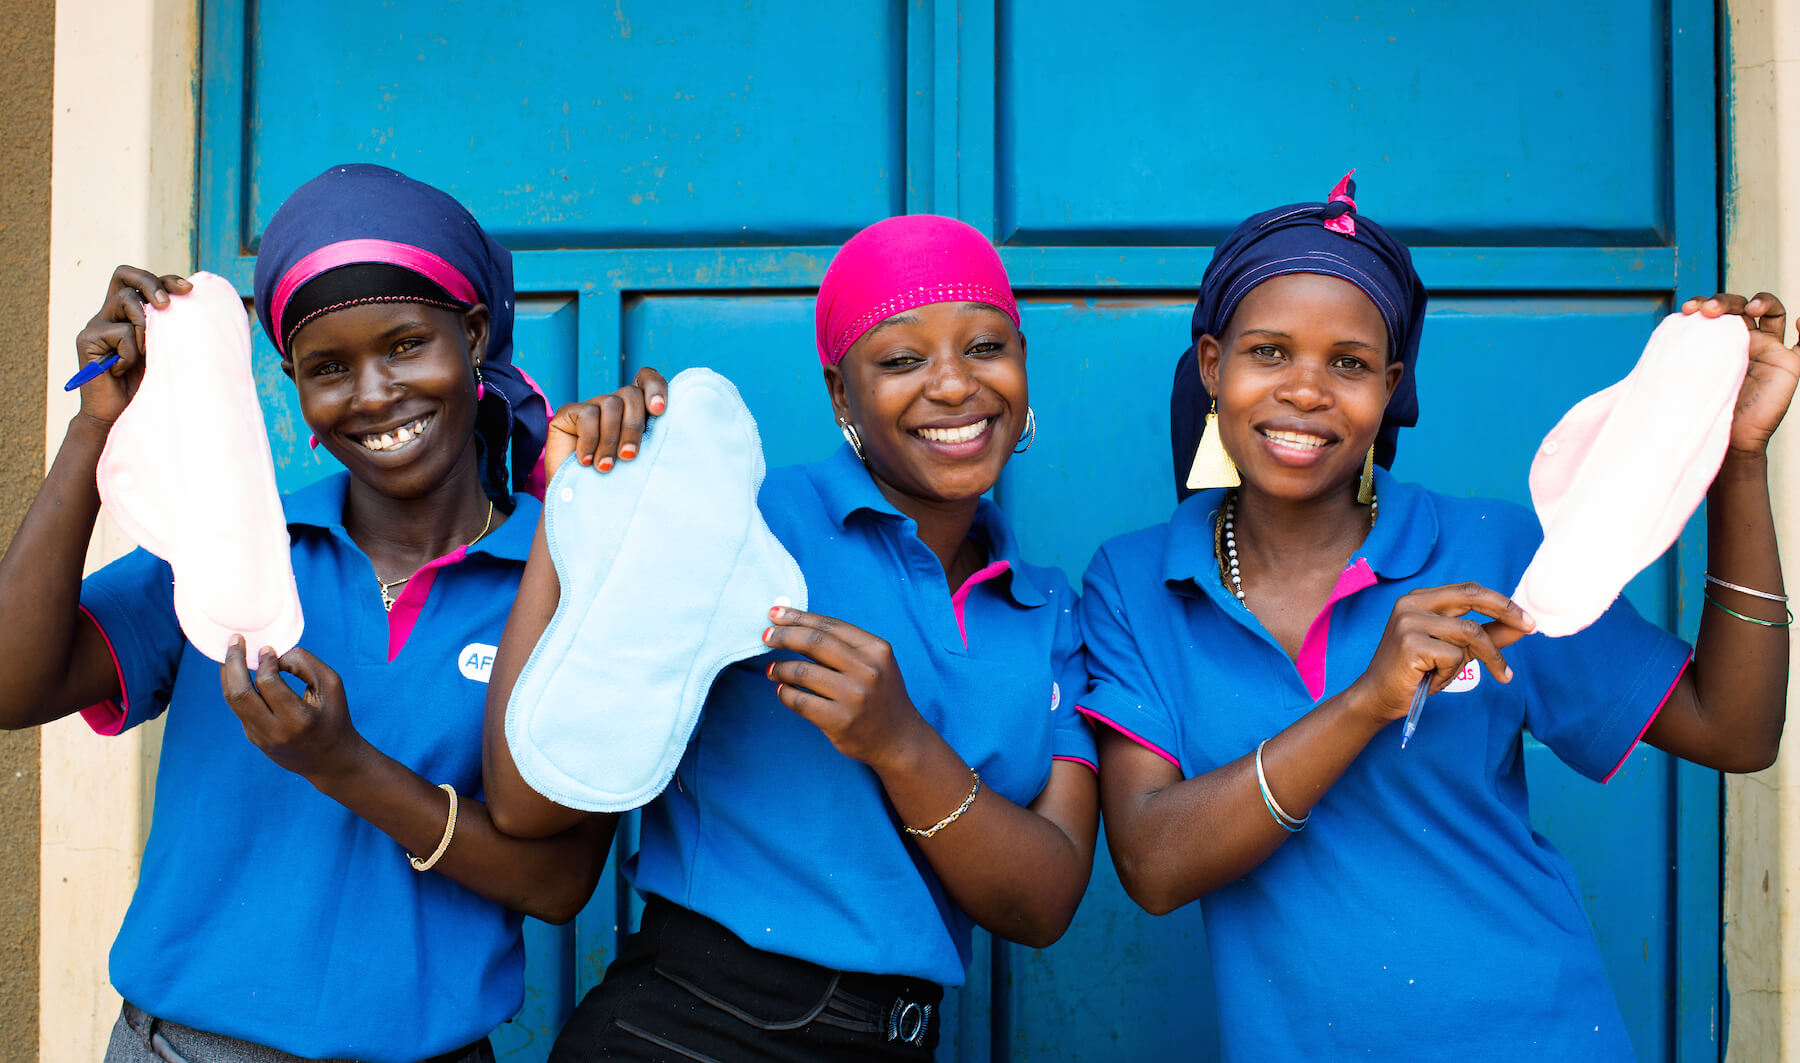 Reusable Sanitary Pads Help Keep East African Girls in School. Period.